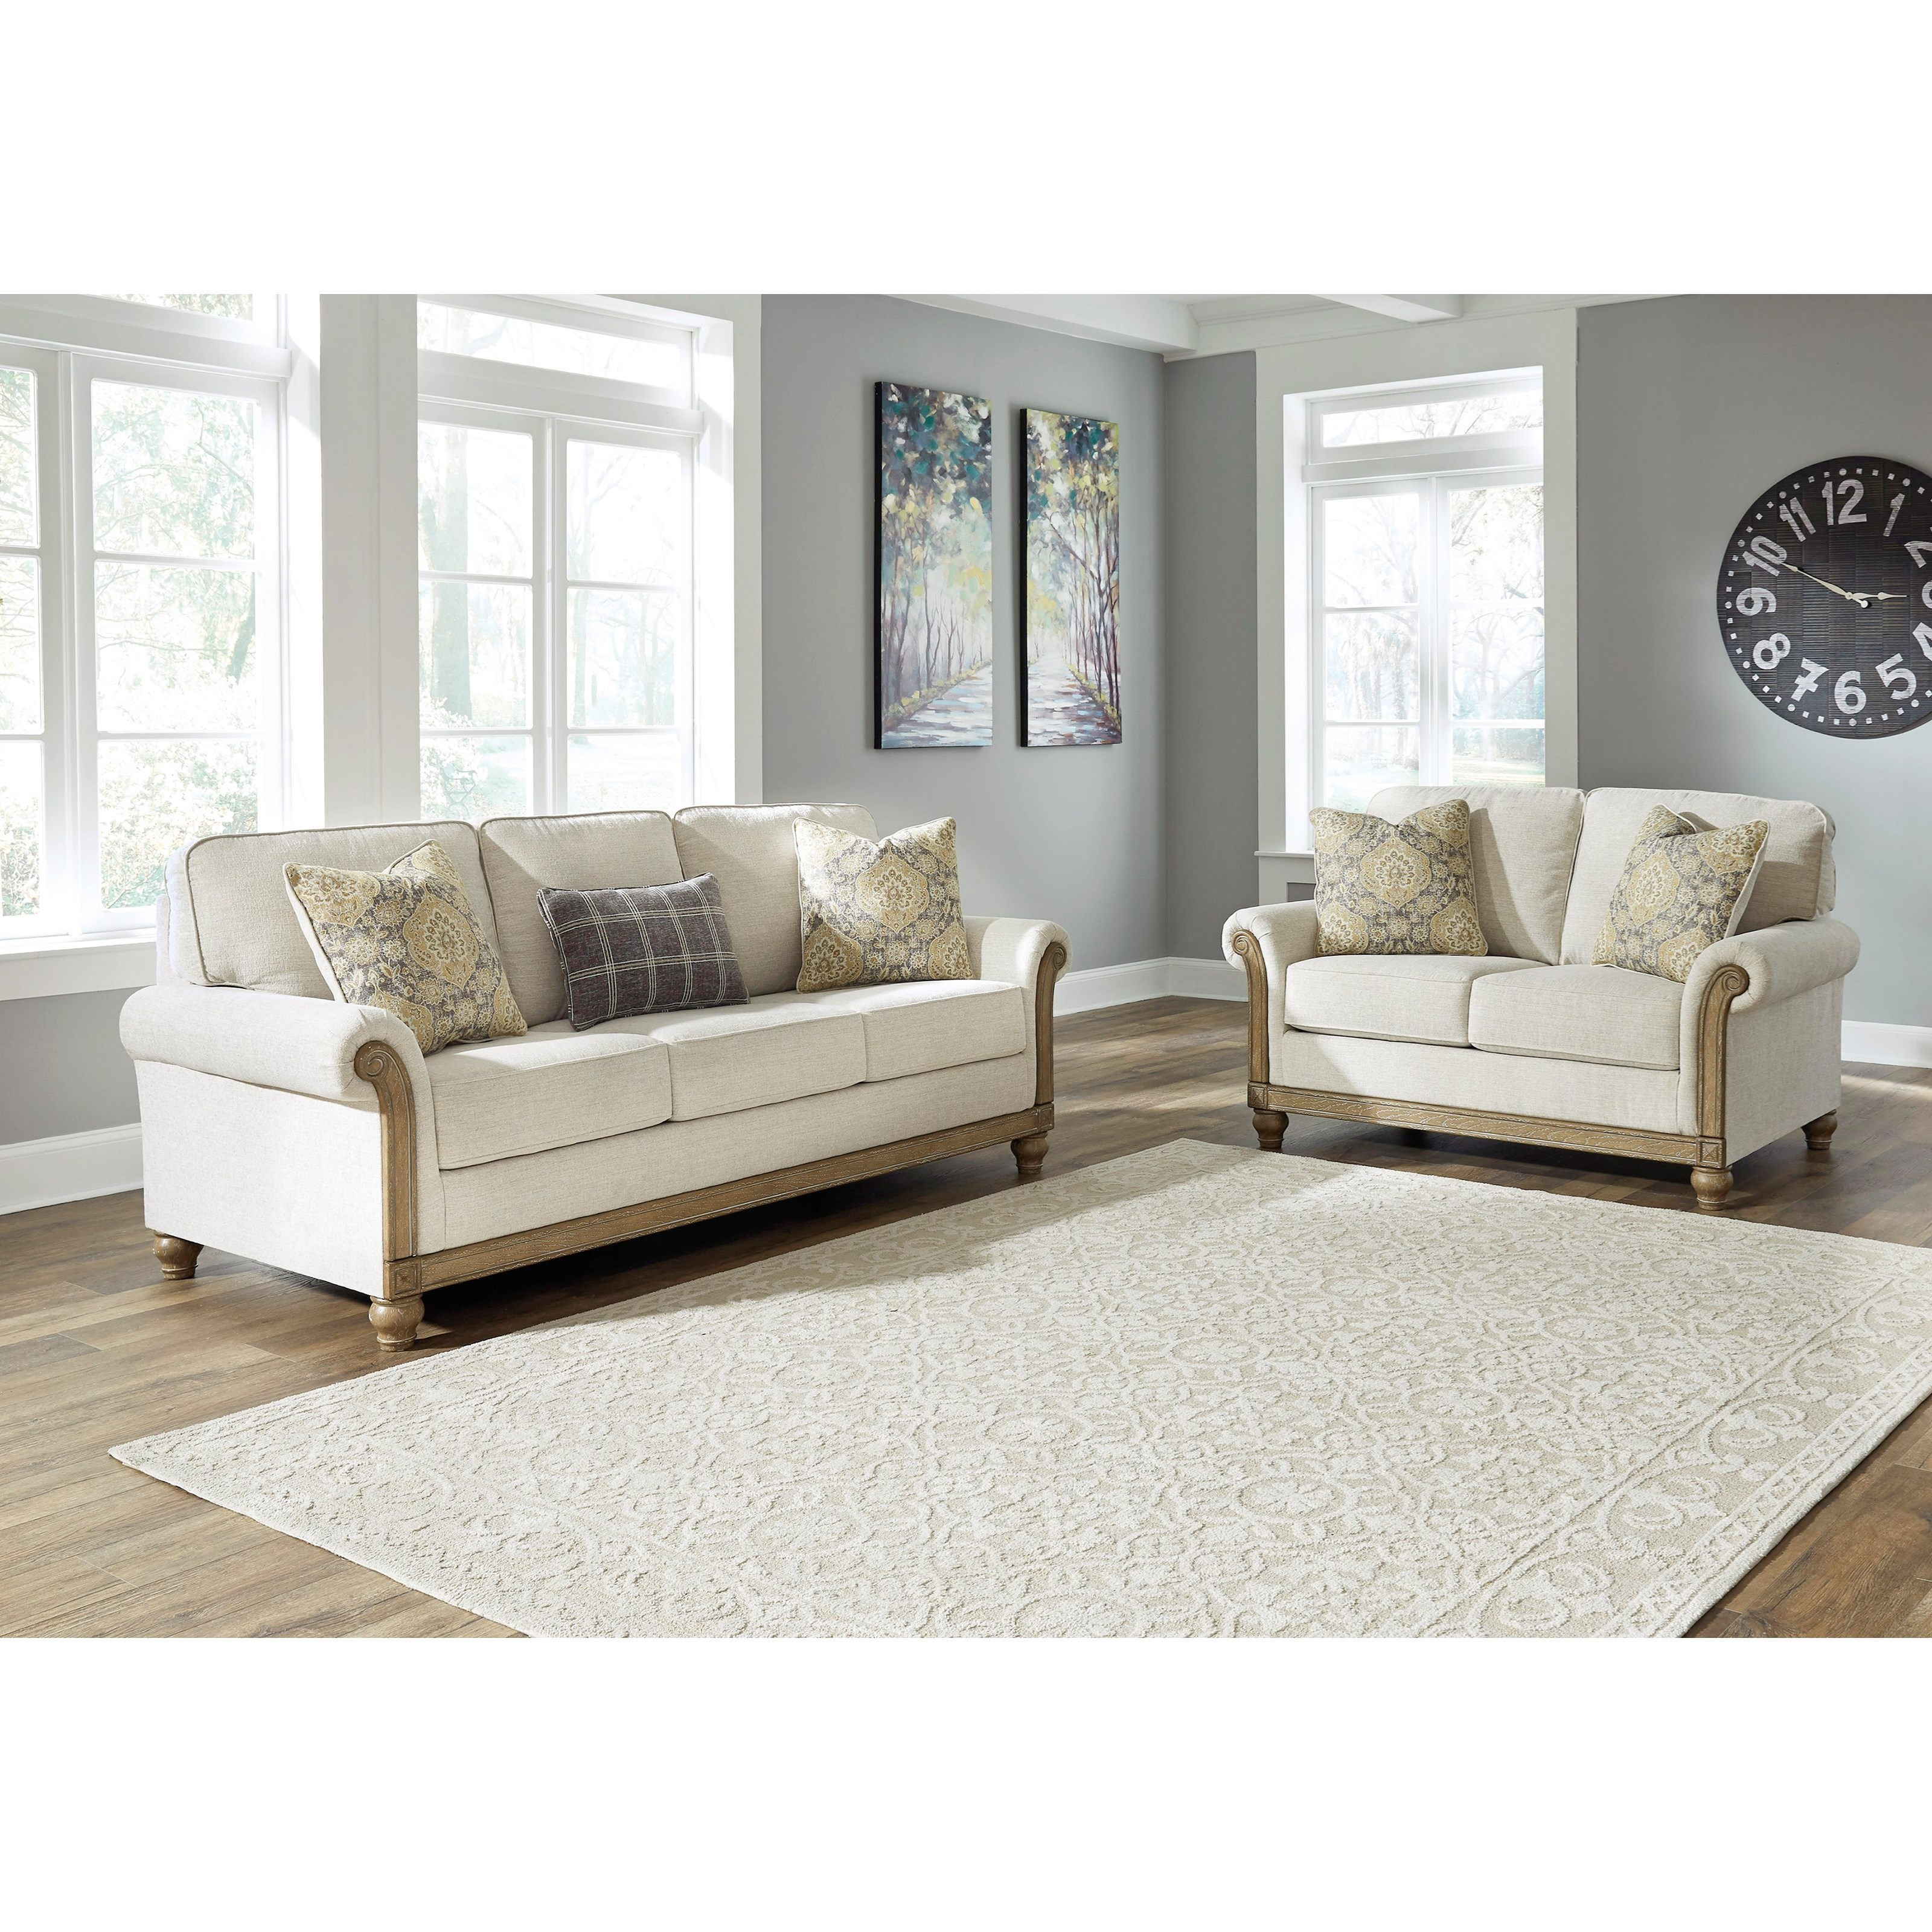 Stoneleigh  Living Room Group by Ashley at Godby Home Furnishings